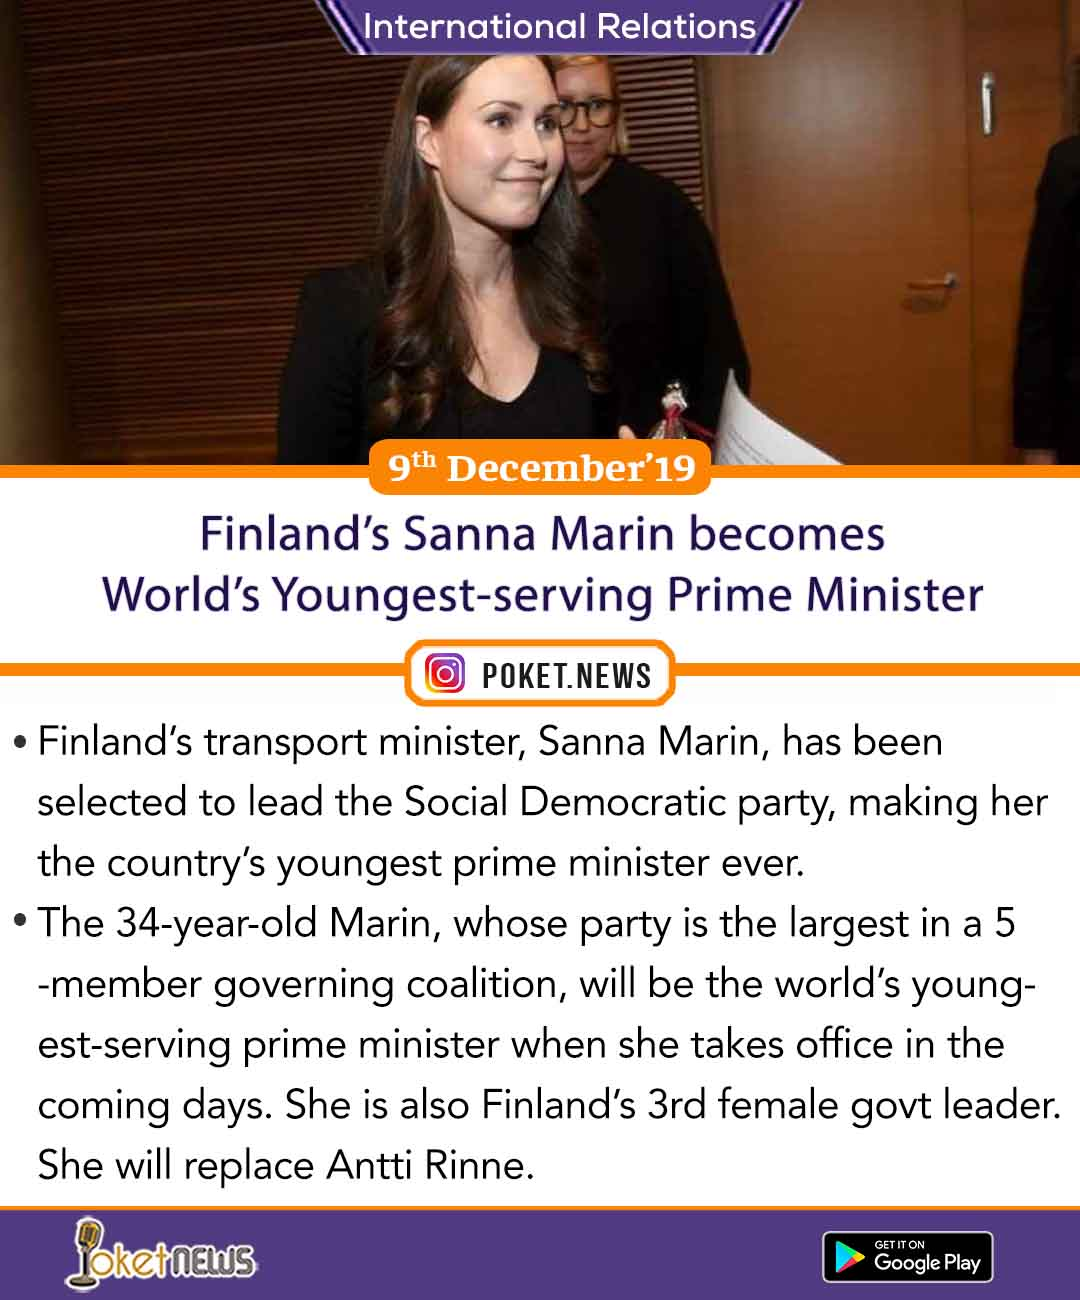 Finland's Sanna Marin becomes World's Youngest-serving Prime Minister